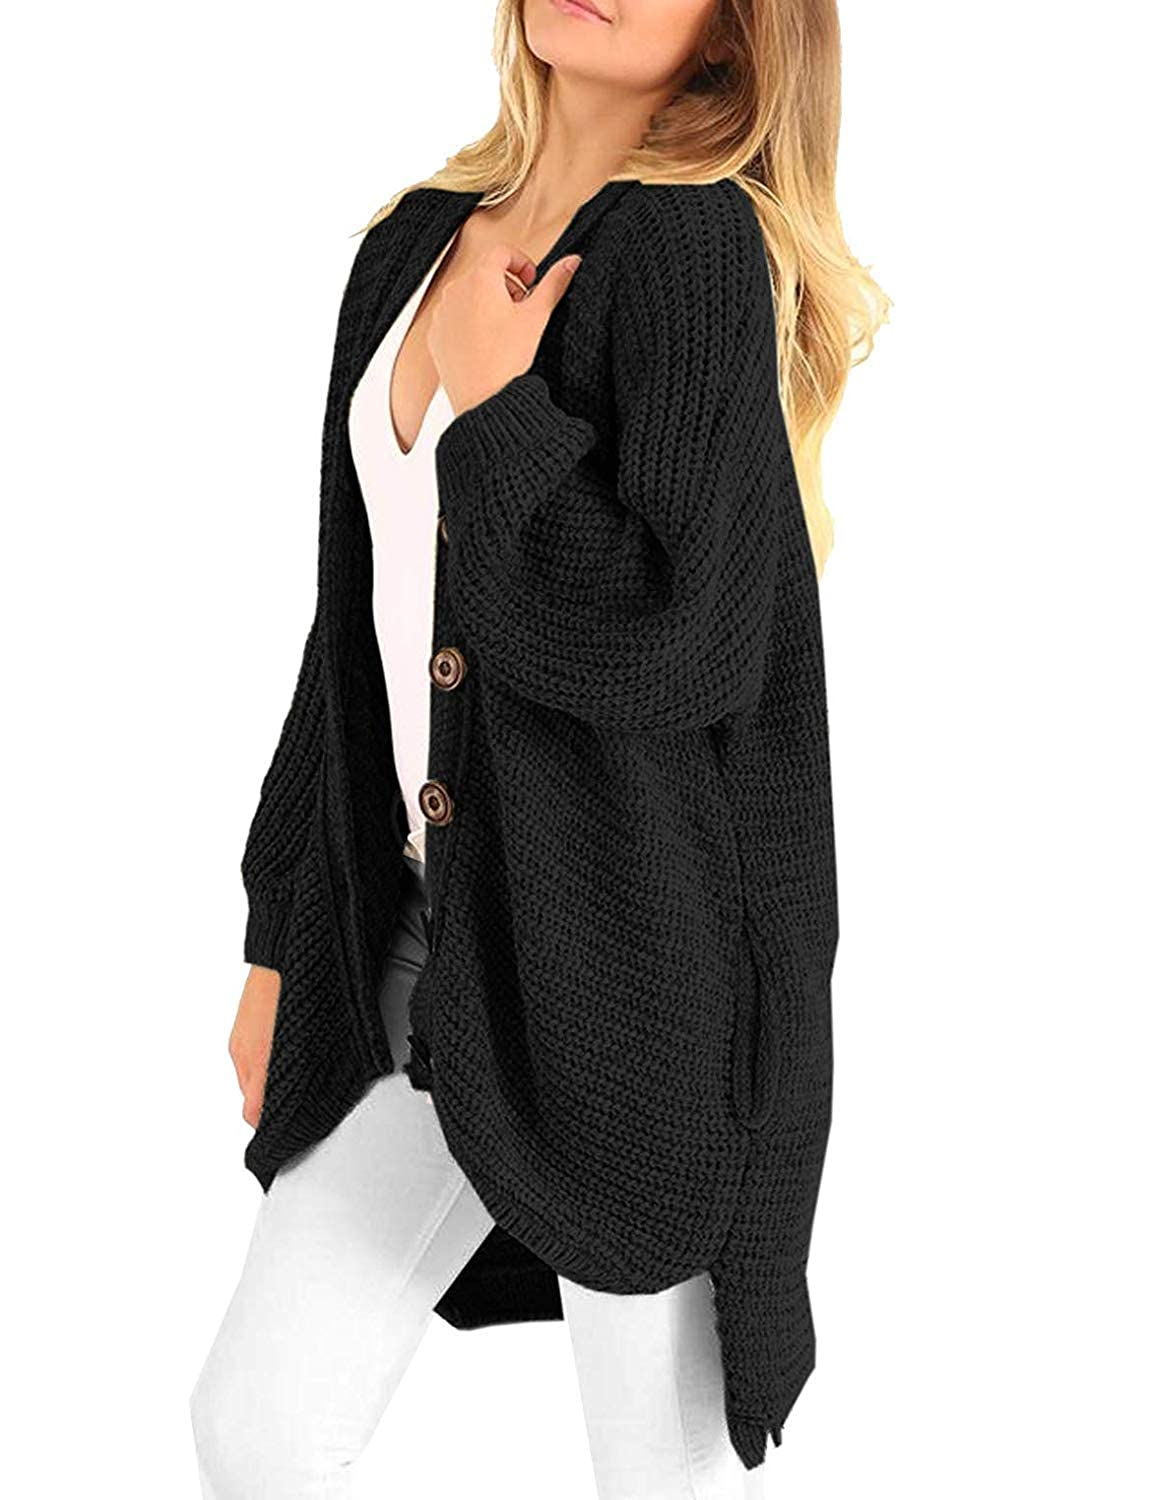 Buy Imysty Womens Winter Oversized Sweater Cardigans Button